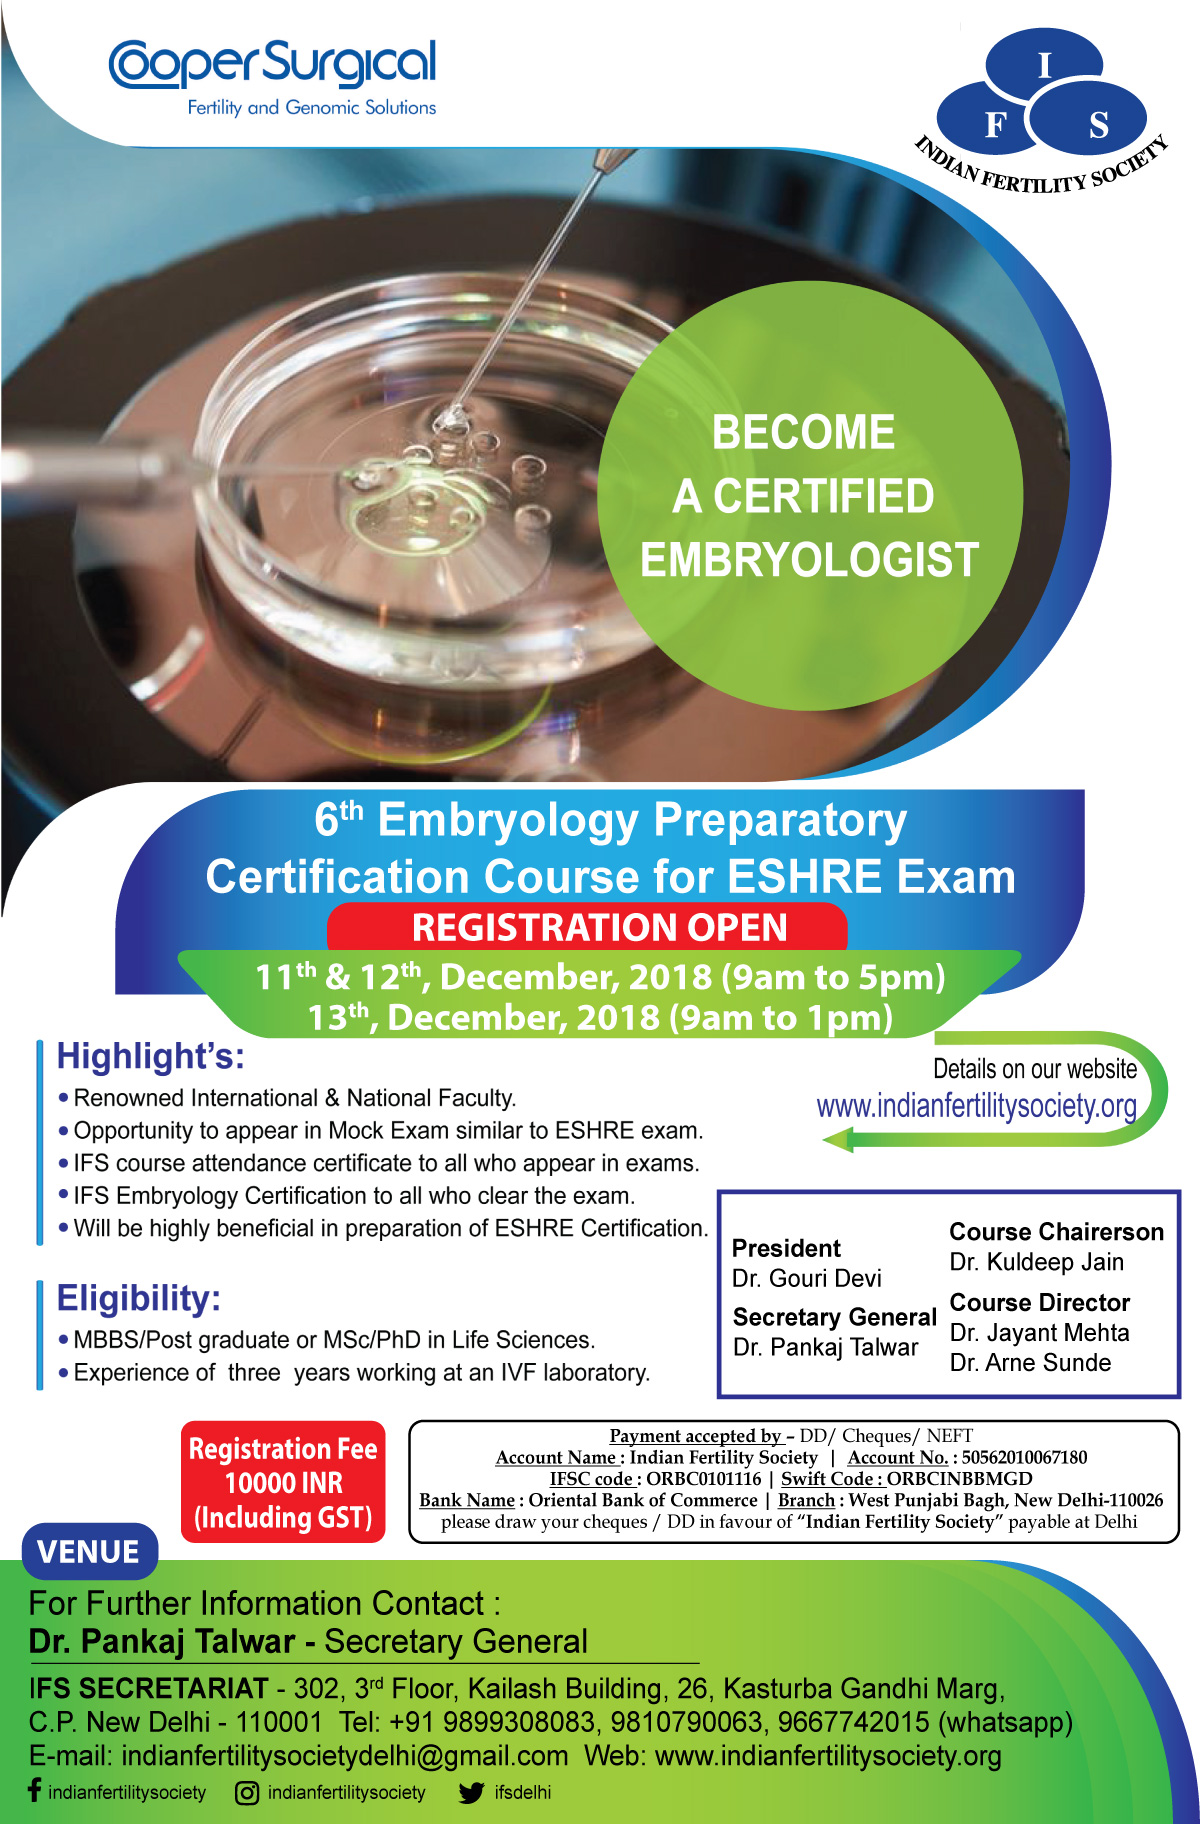 6th Embryology Preparatory Certification Course for ESHRE